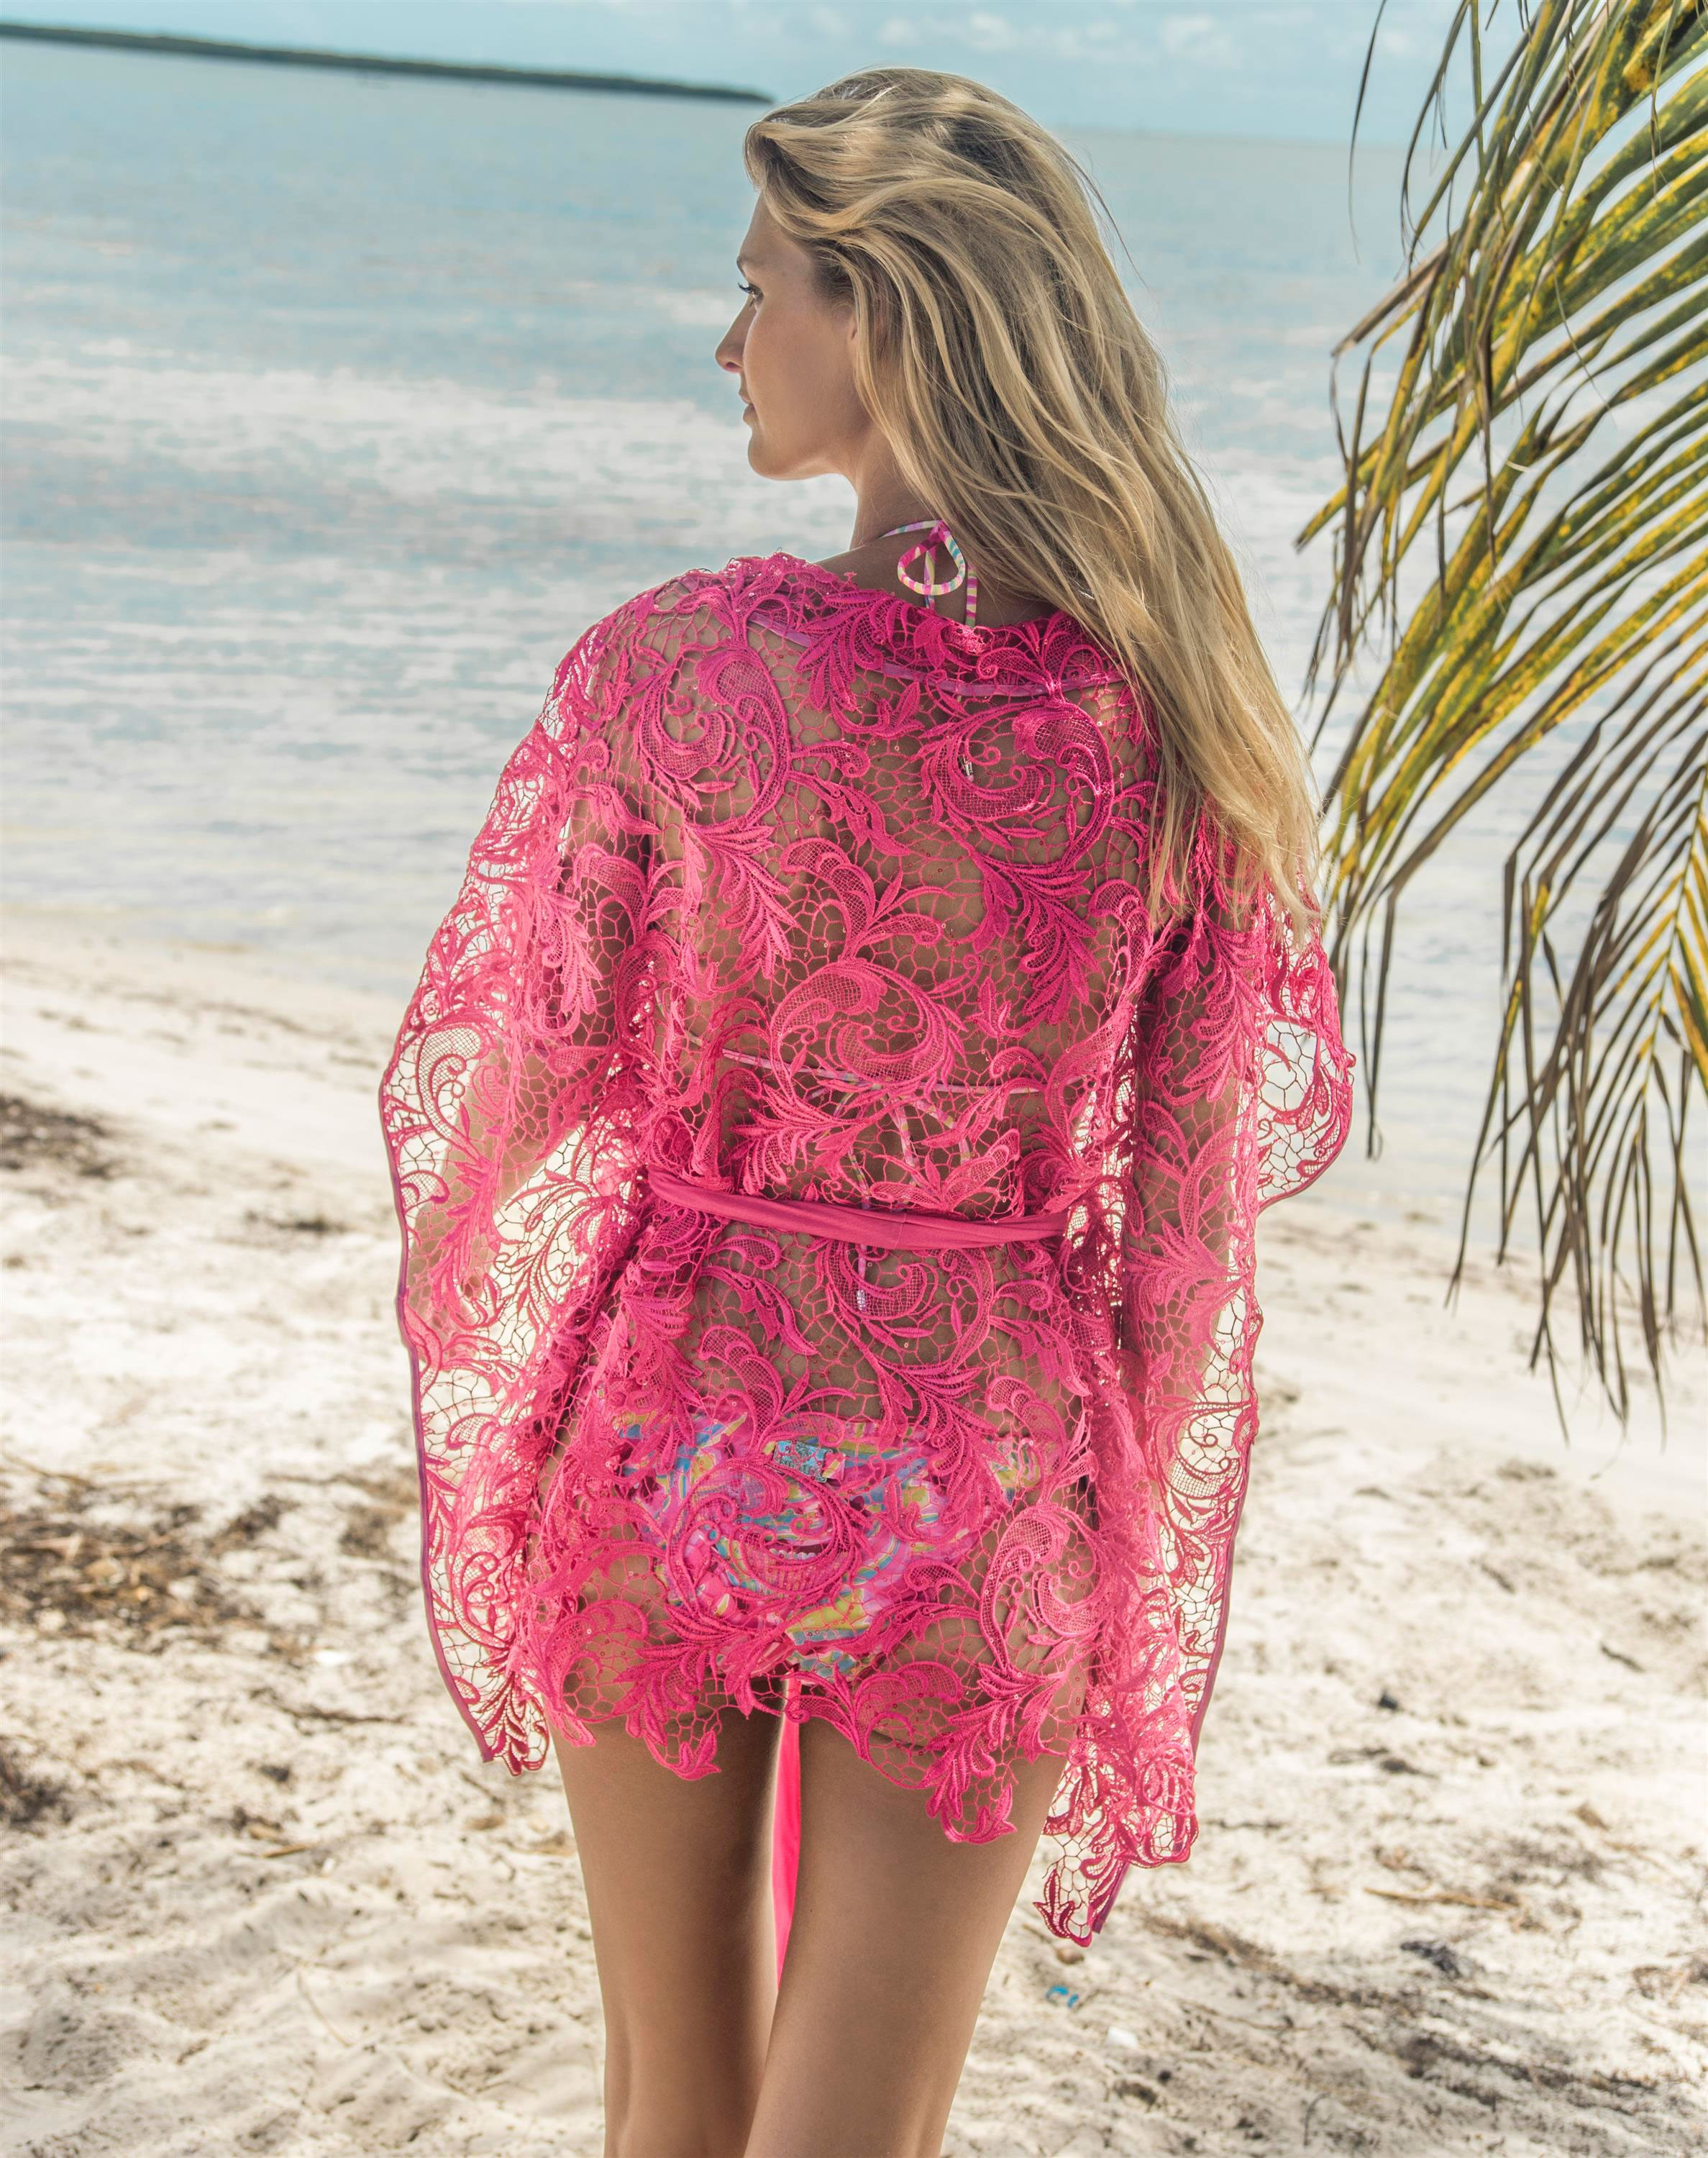 eniqua cover up beach dress pink flower net s. Black Bedroom Furniture Sets. Home Design Ideas